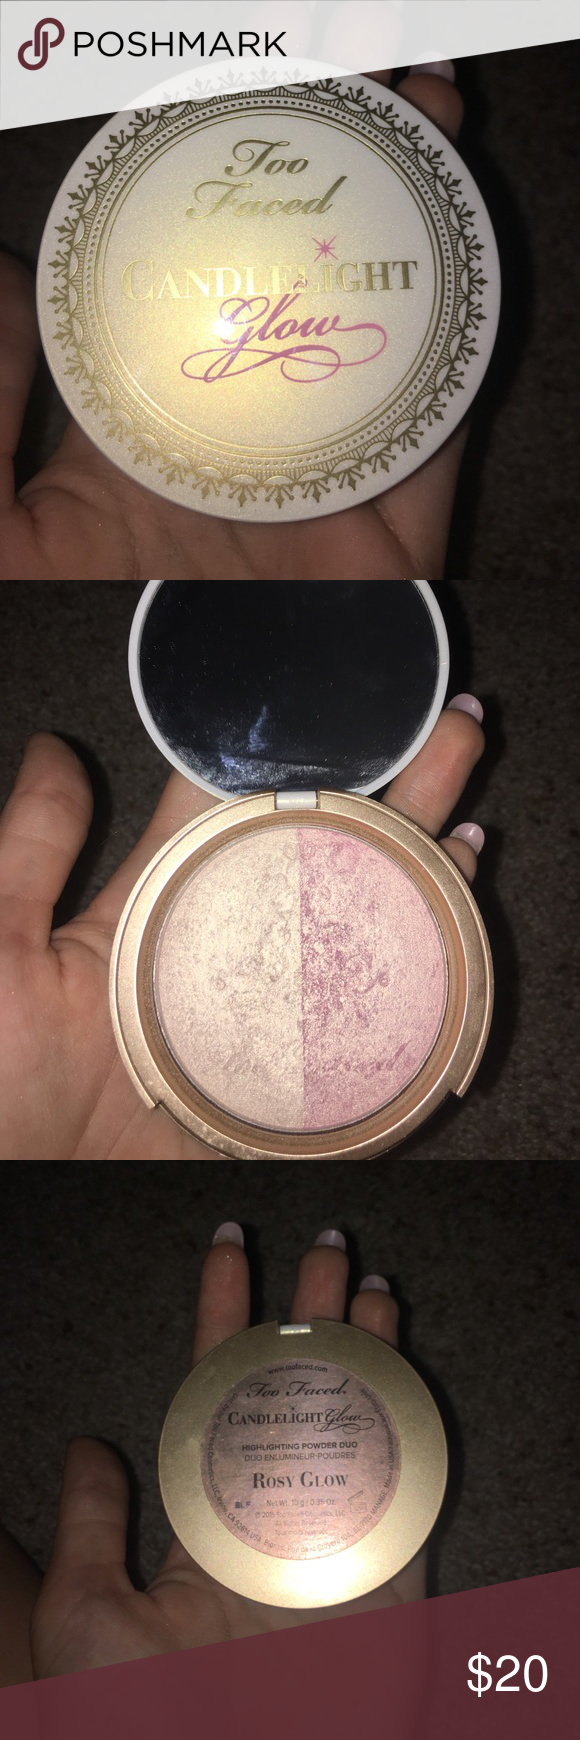 Too Faced Candlelight Glow in the shade Rosy Glow